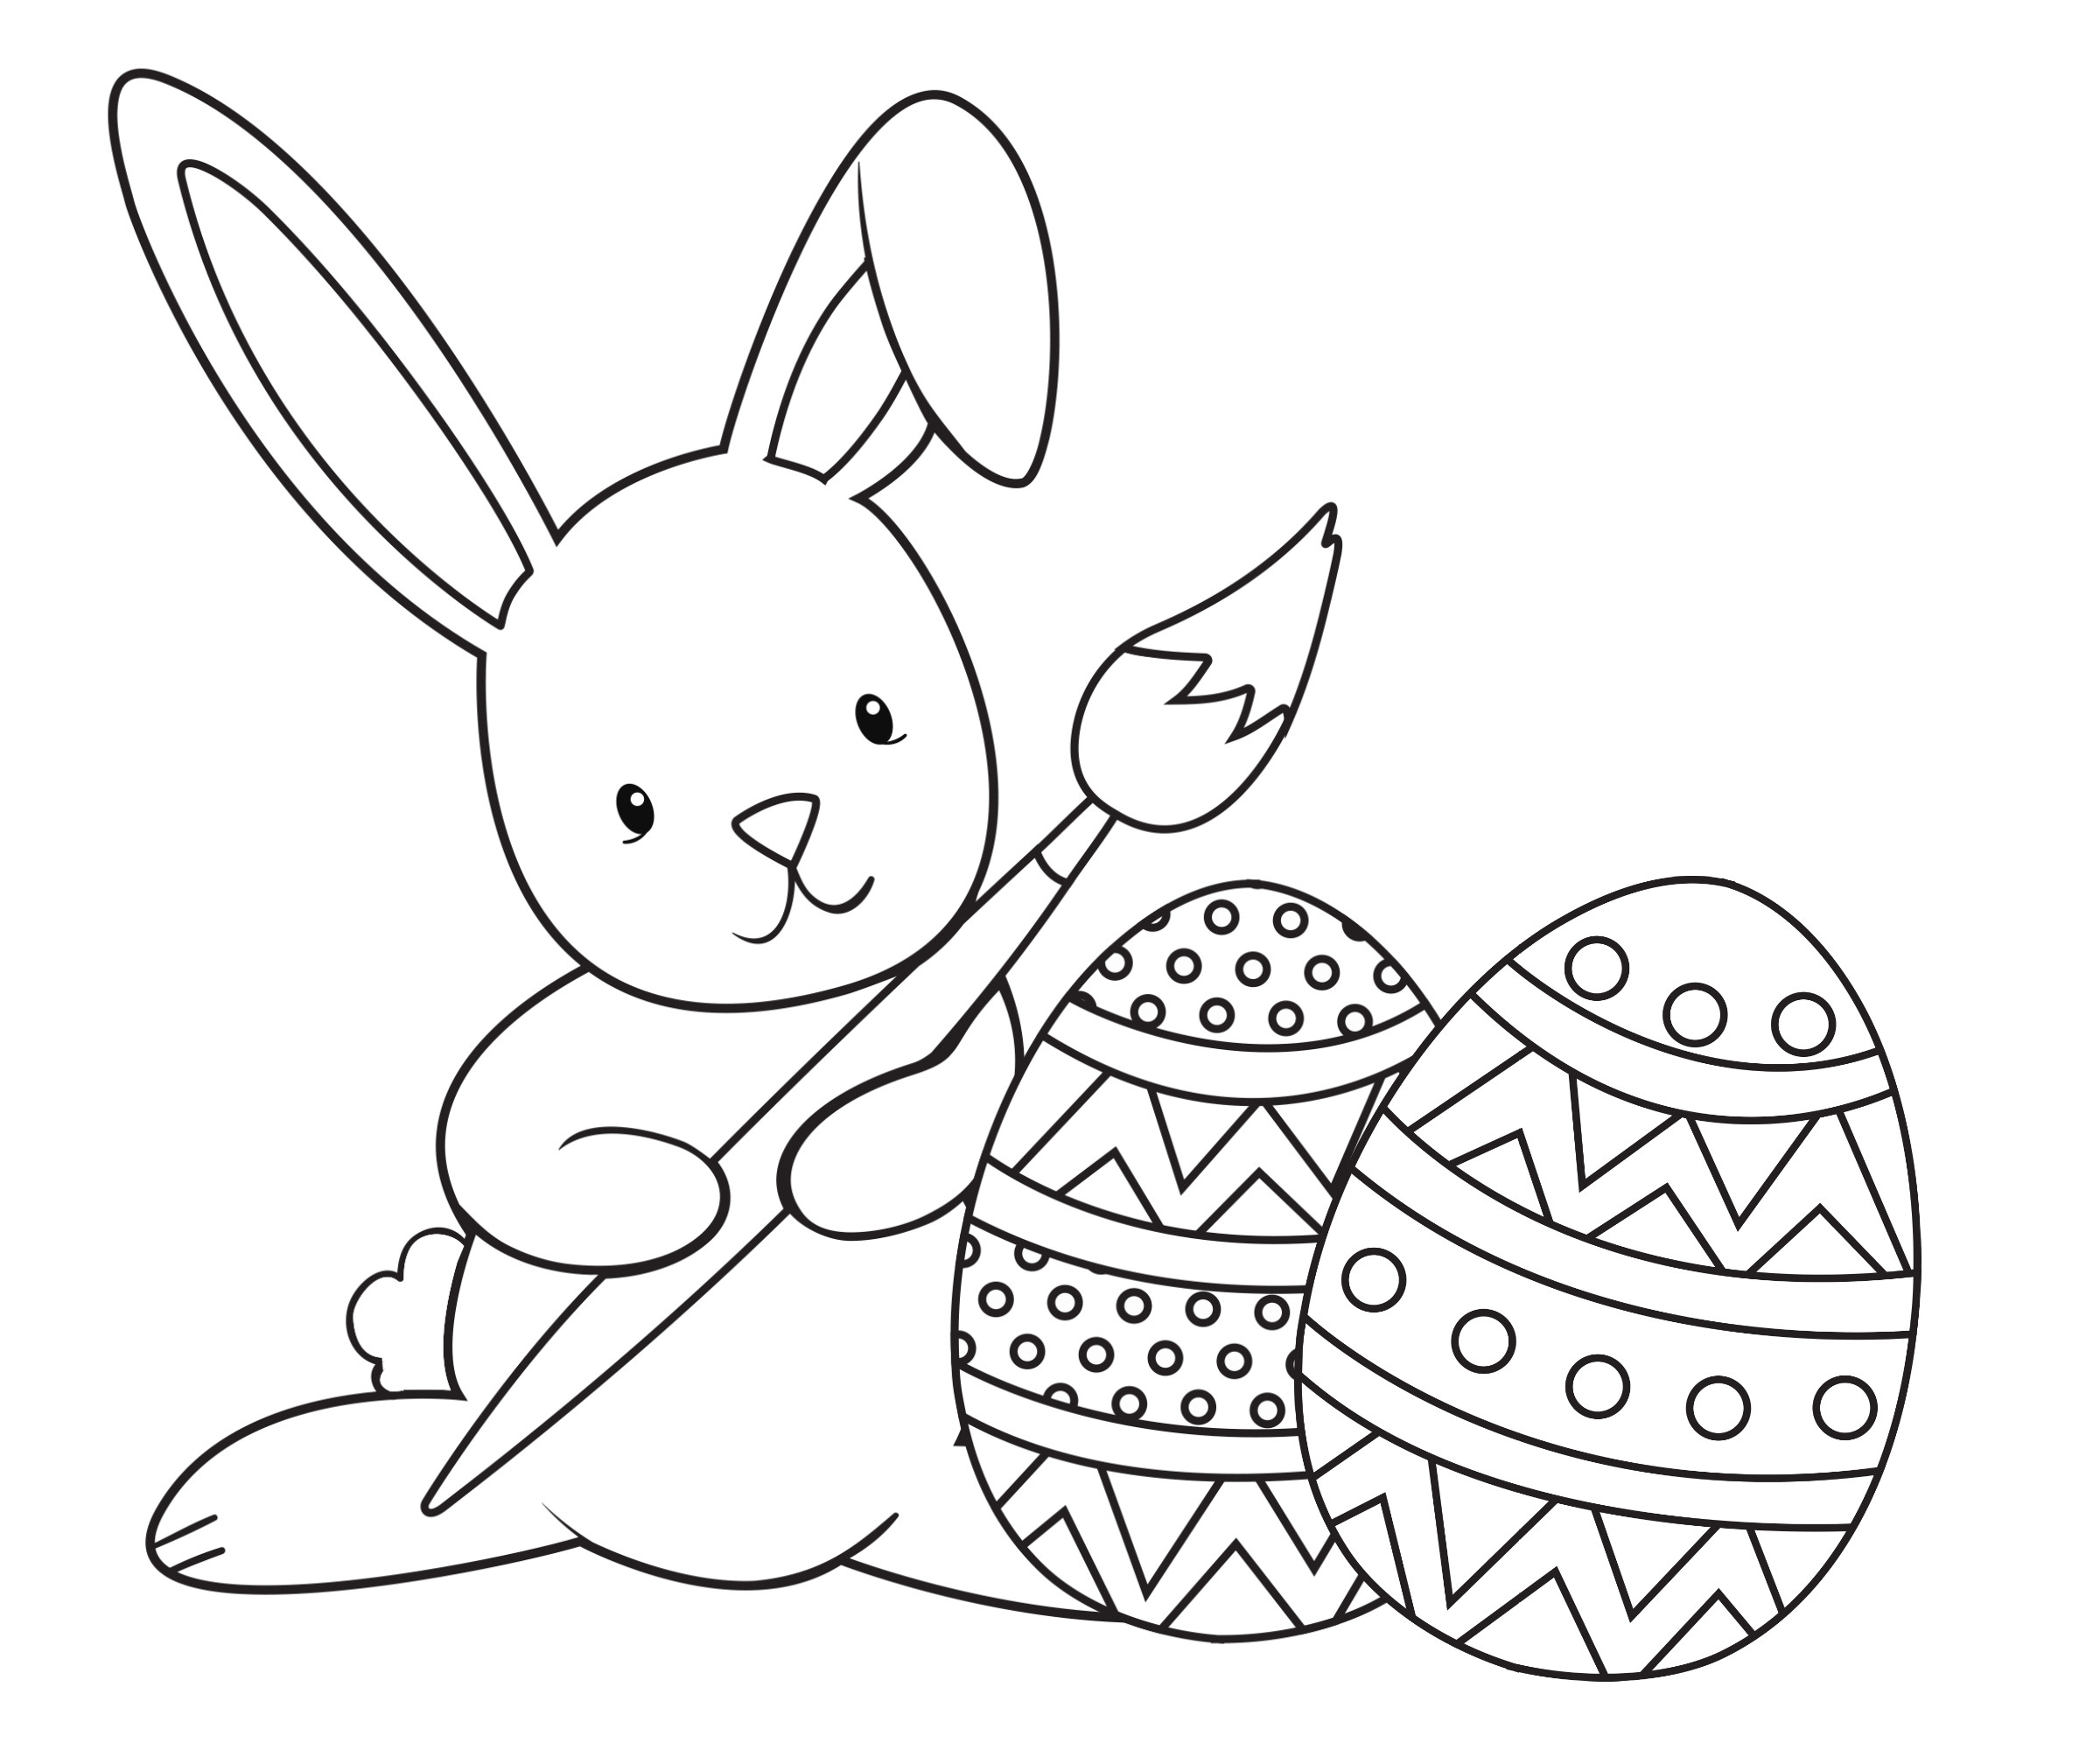 Easter Bunny Coloring Pages For Toddlers  Easter Coloring Pages for Kids Crazy Little Projects